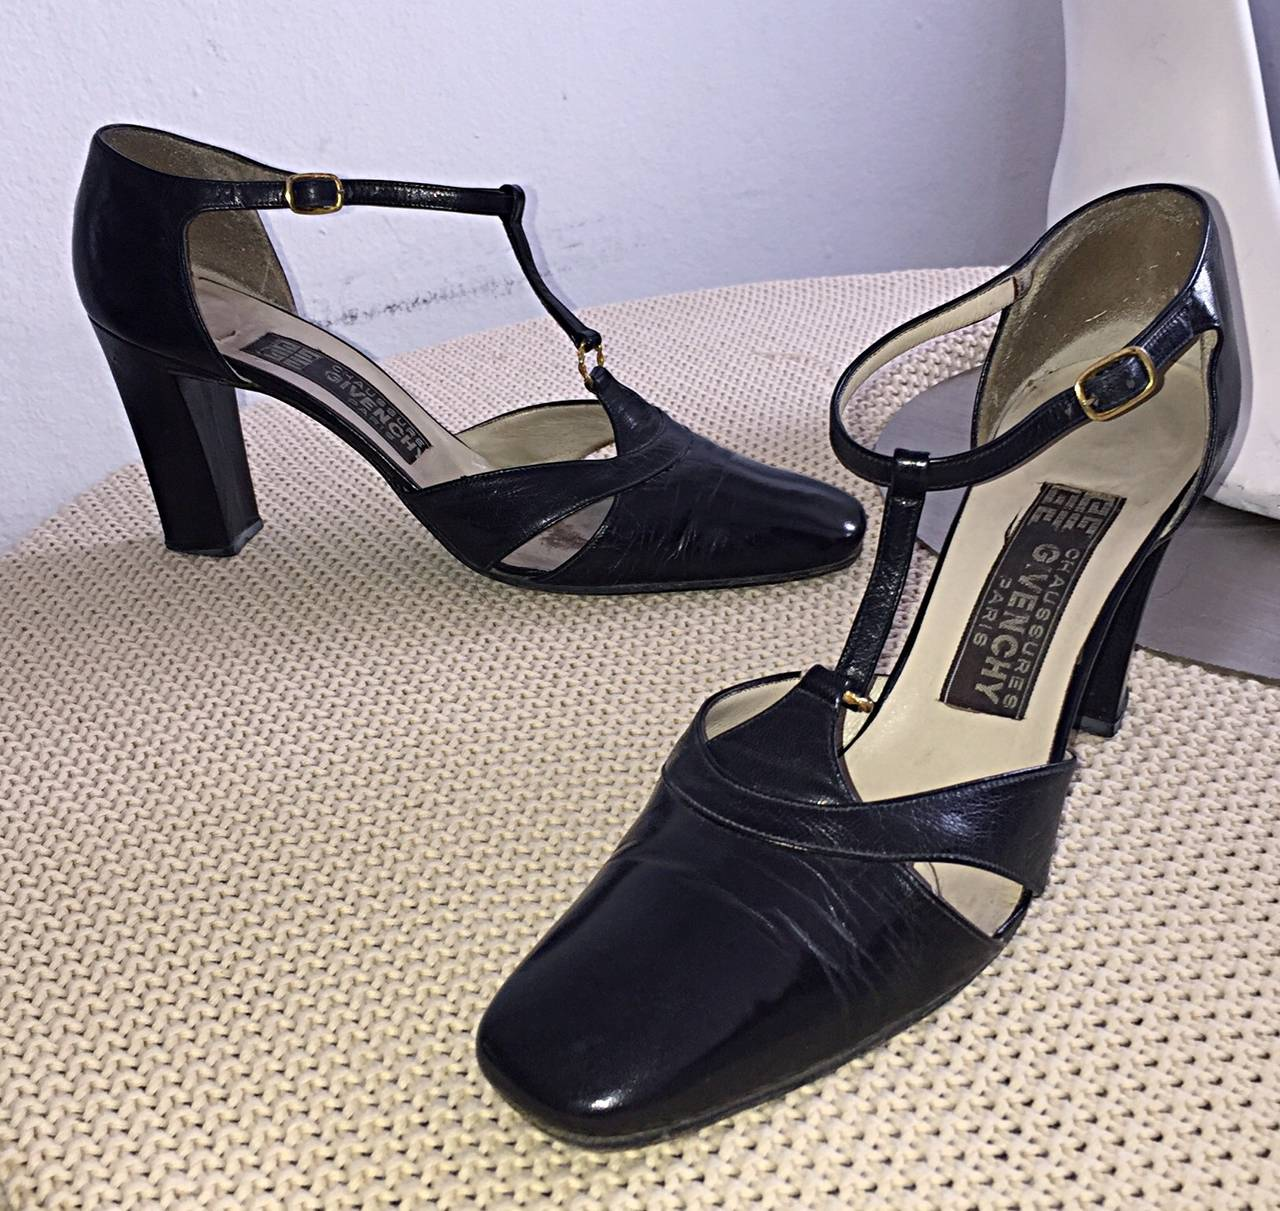 1960s Vintage Givenchy Black Leather Peekaboo T - Strap Heels Shoes Size 8 7